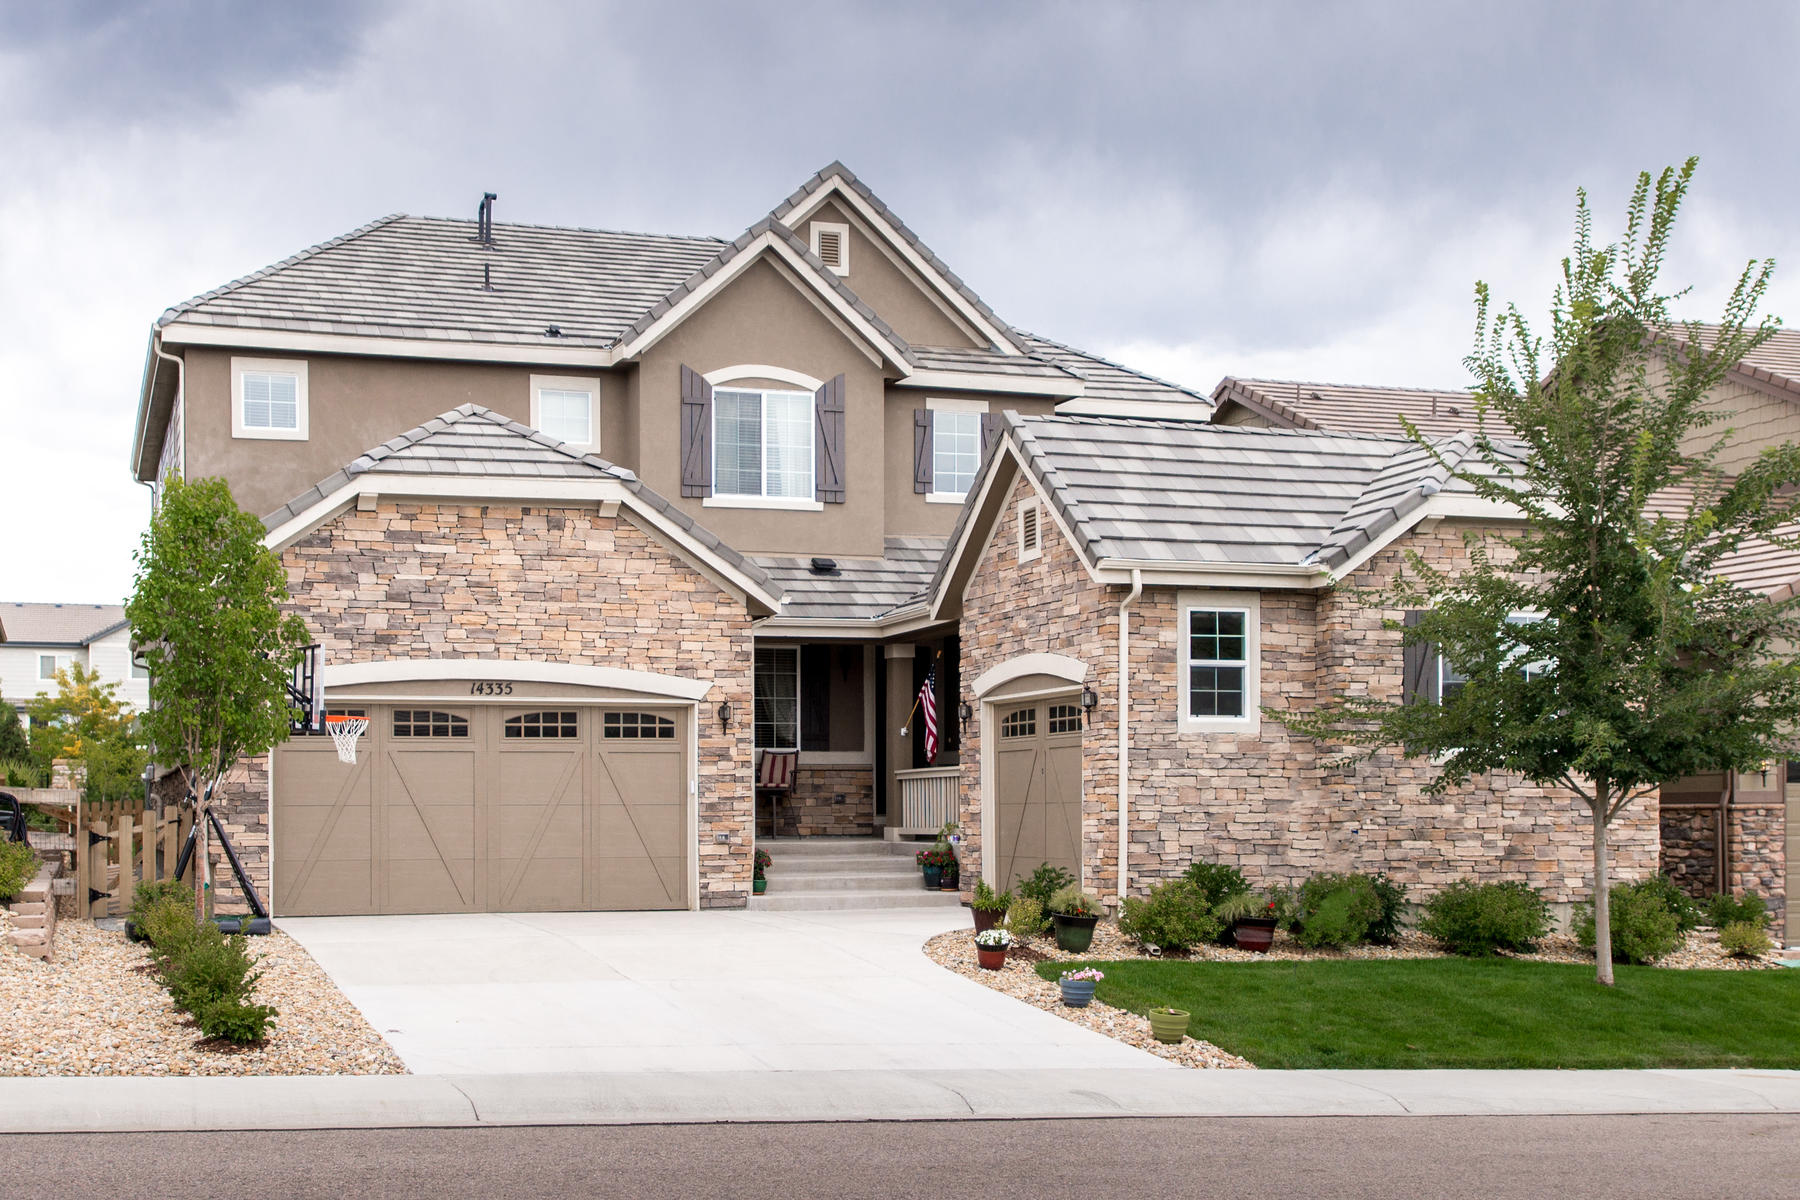 Property for Active at An extraordinary home with modern living flair. 14335 Glenayre Cir Parker, Colorado 80134 United States